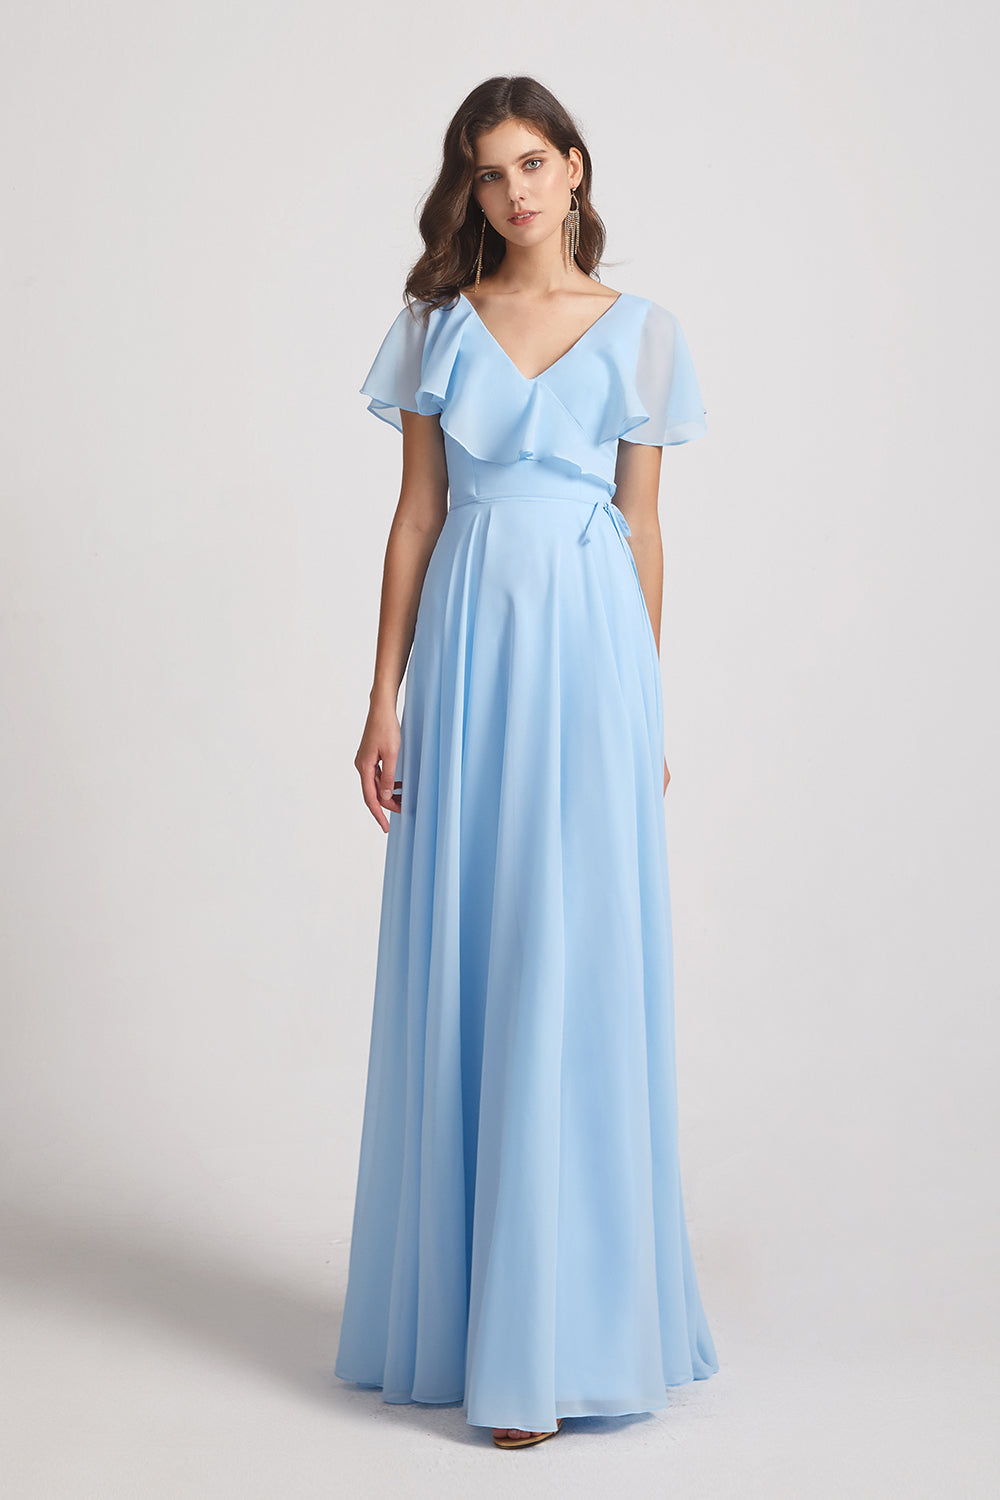 a-line blue long chiffon bridesmaid gowns